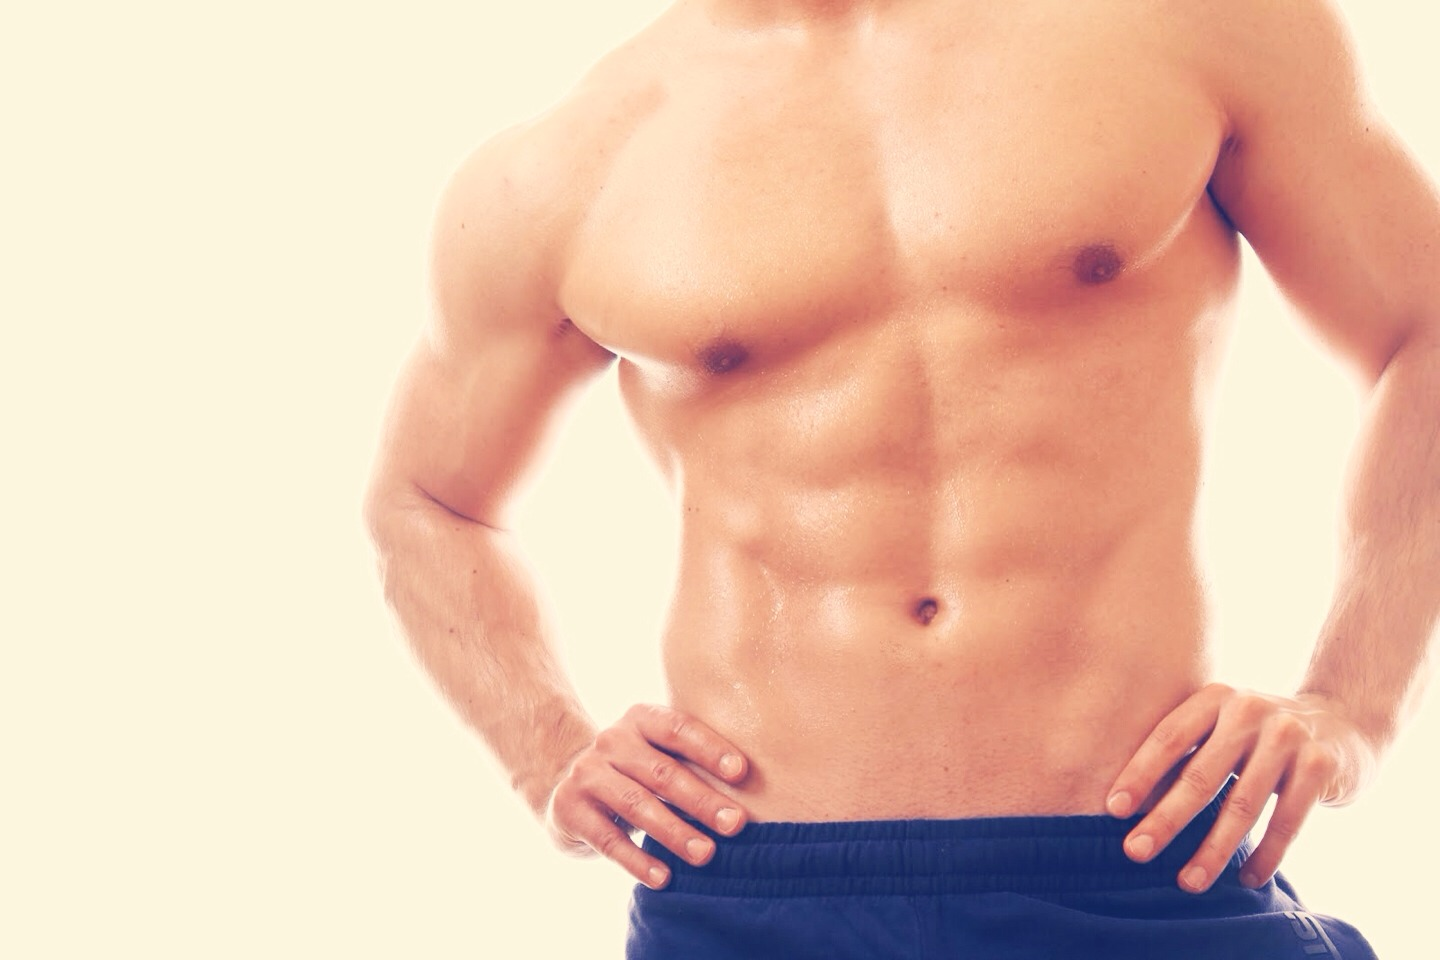 Flexing your abs not only makes your stomach look flat but it actually strengthens your abs! So when you go out, flex your abs and look great and help your stomach!